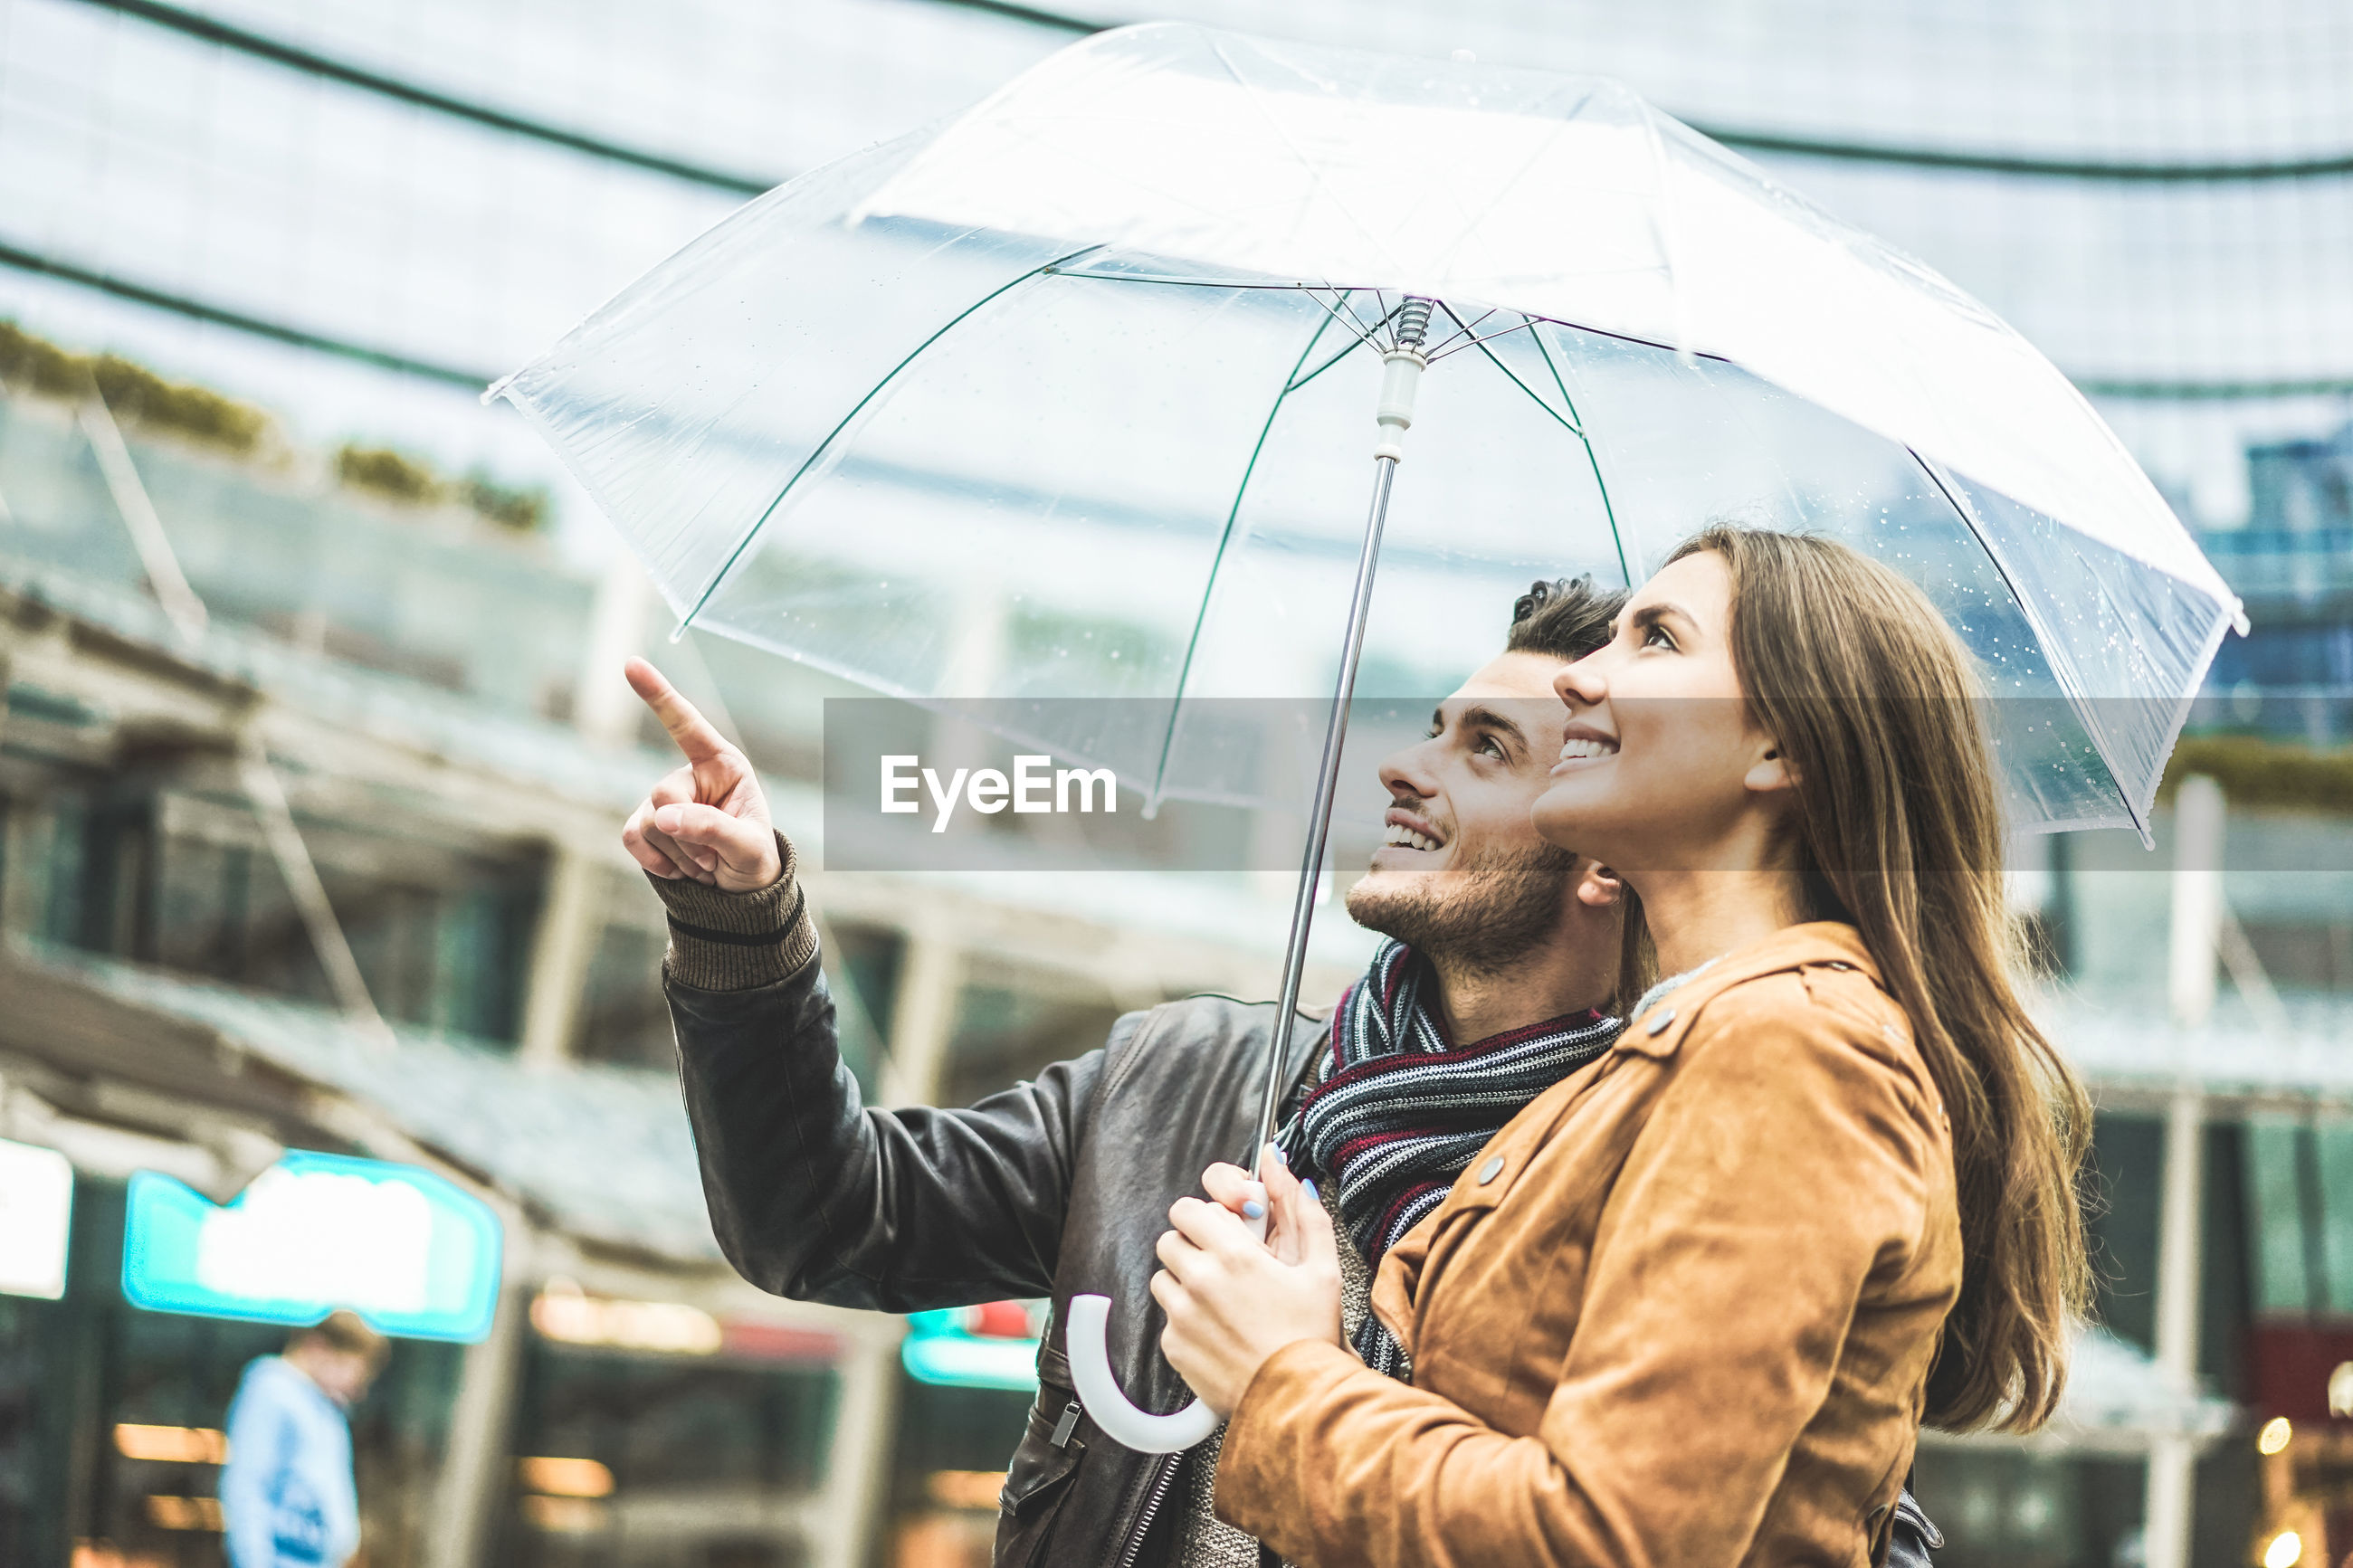 Man pointing while woman holding umbrella in city